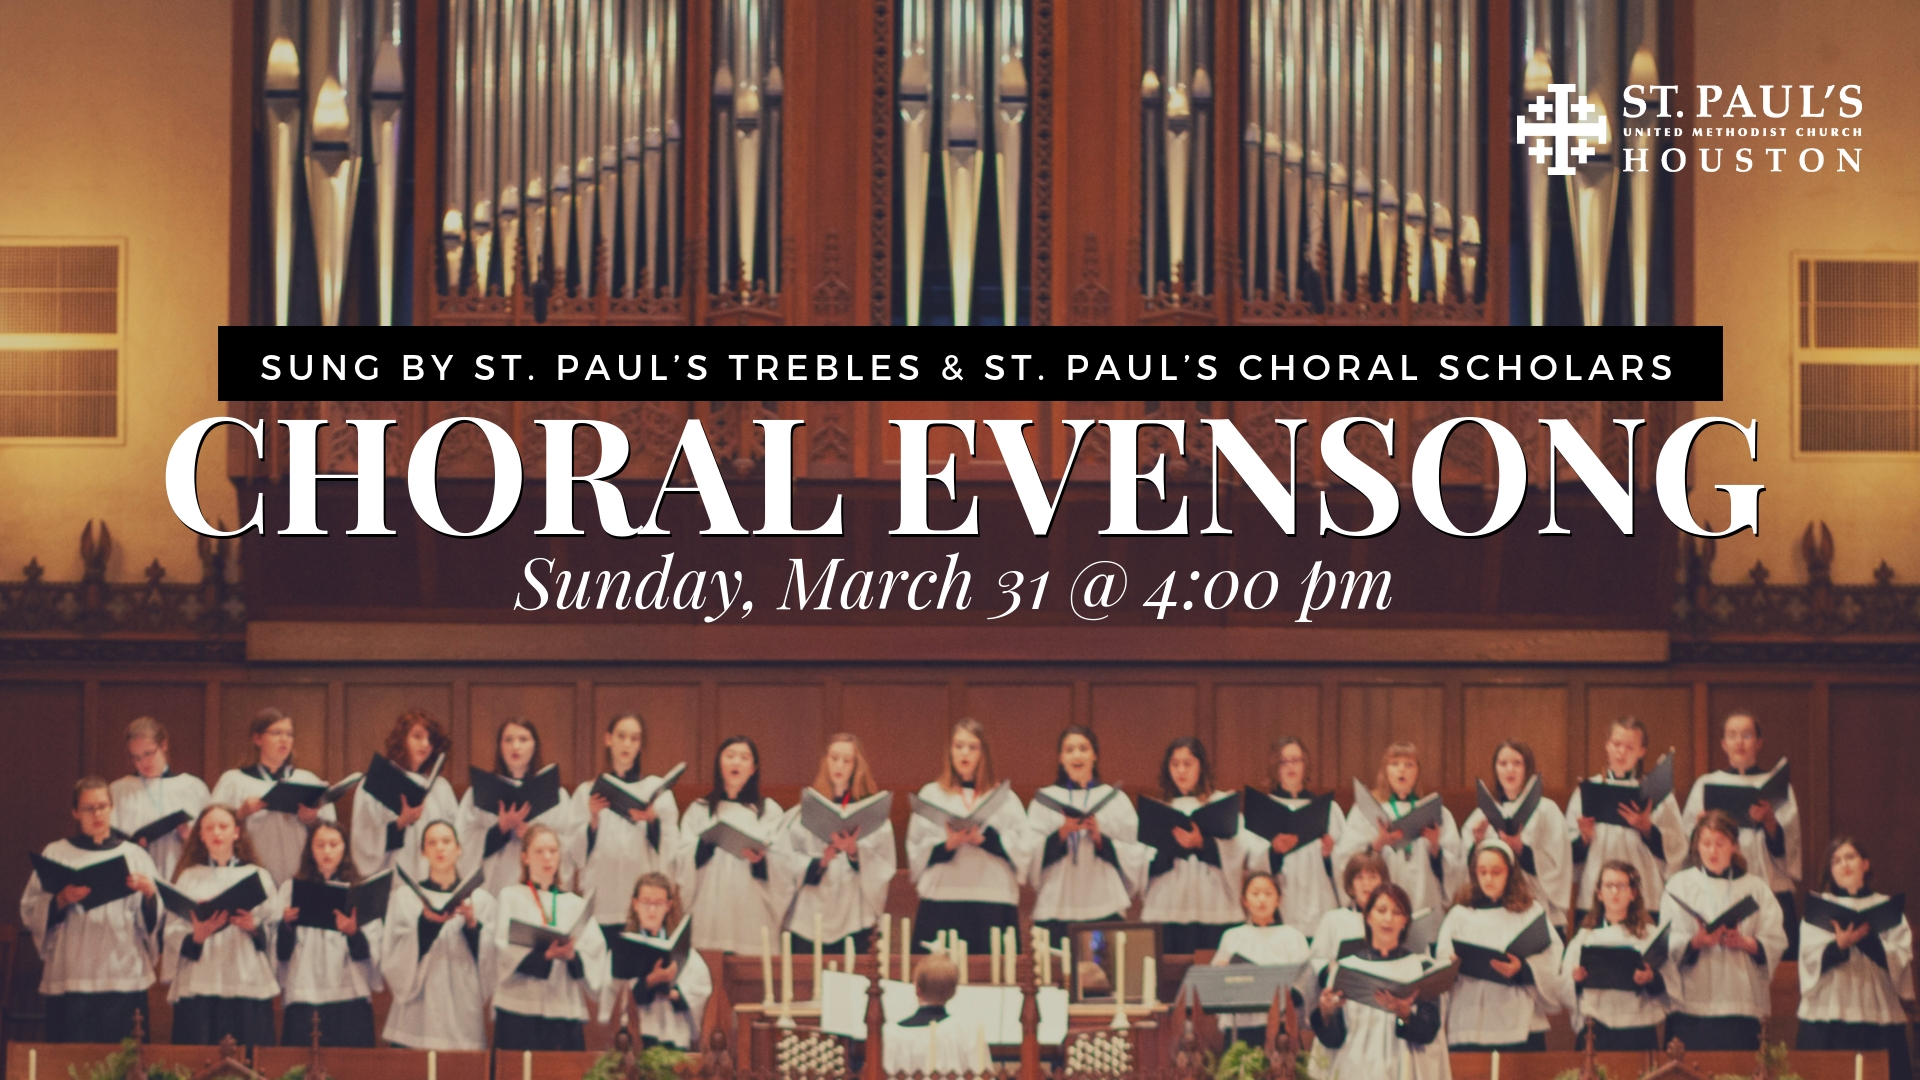 16x9 Choral Evensong - March 31.jpg